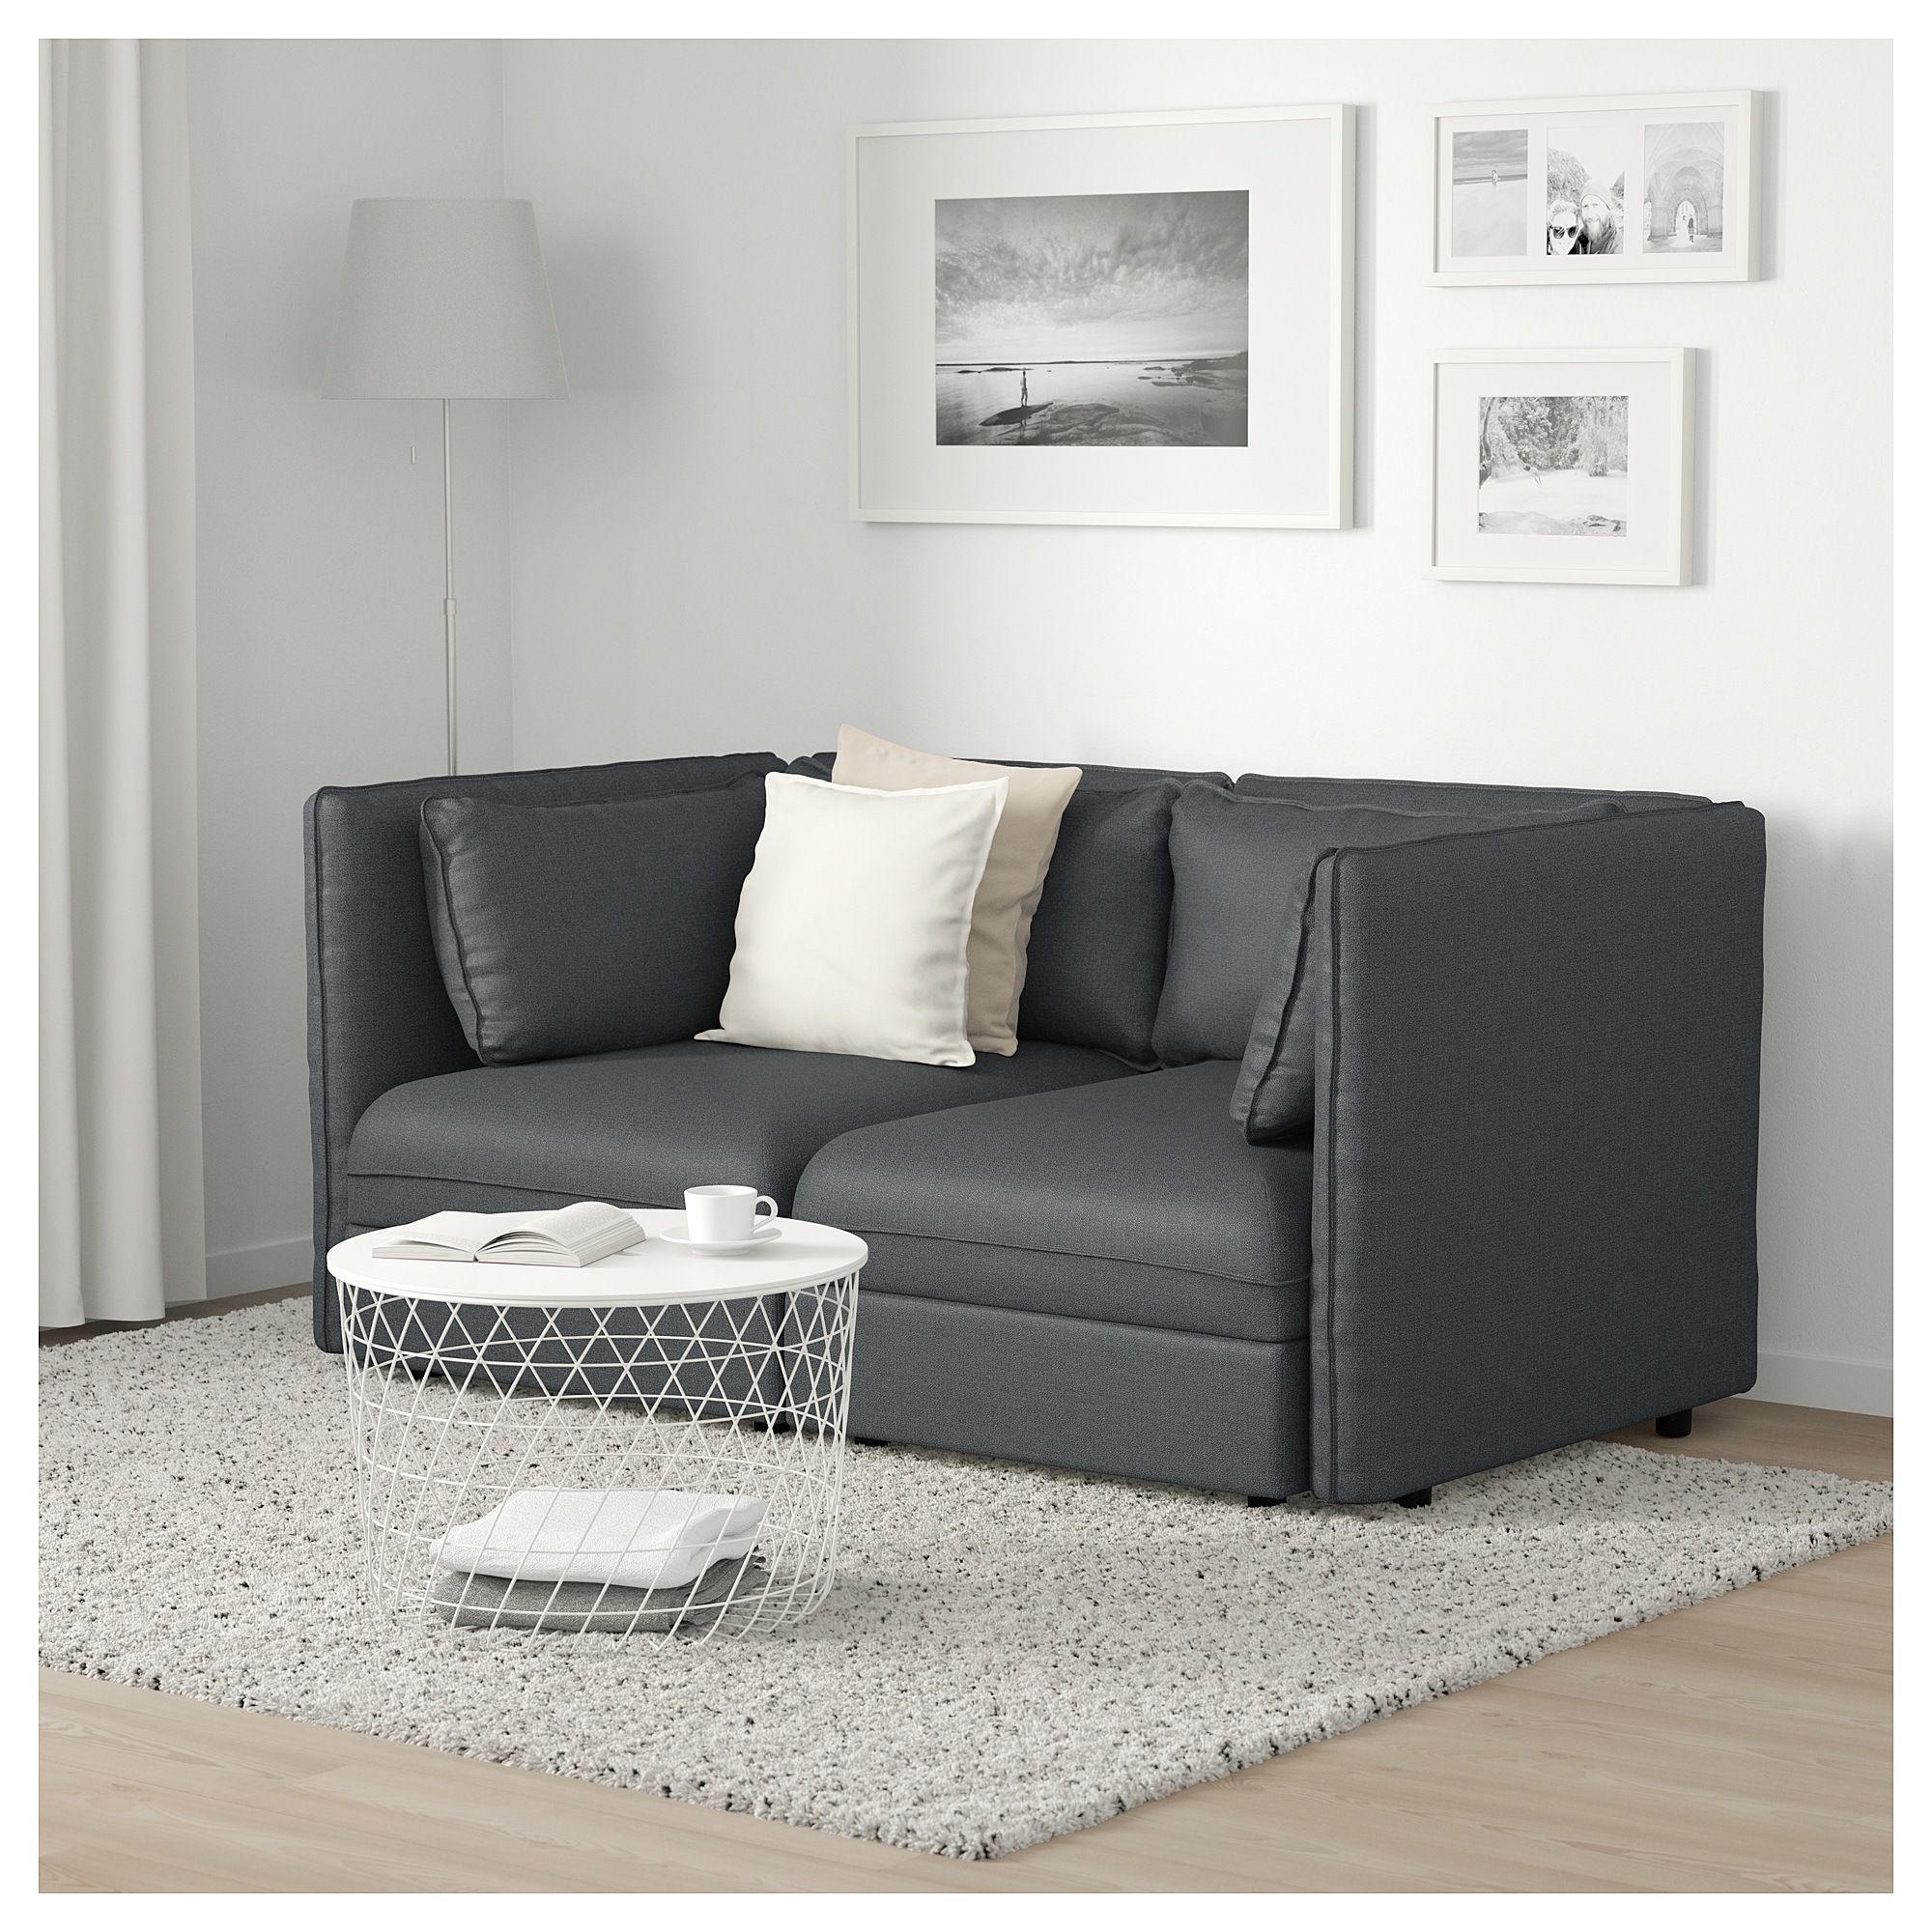 IKEA VALLENTUNA Modular loveseat Hillared dark gray